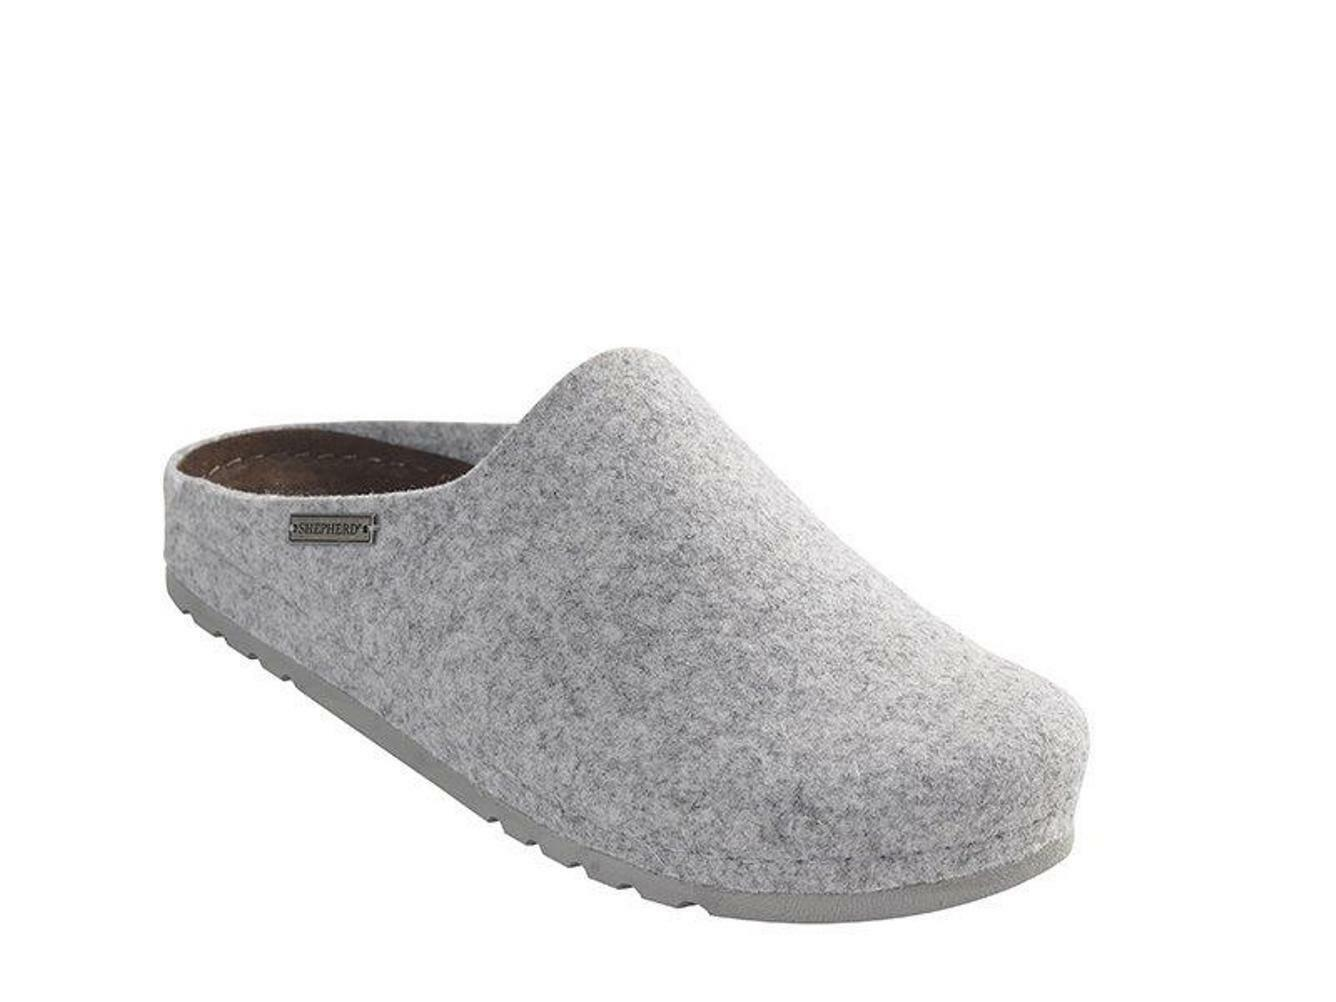 Shepherd Isabell 37 5032 House shoes Slippers Insole Grey Size 38 - 41 NEW